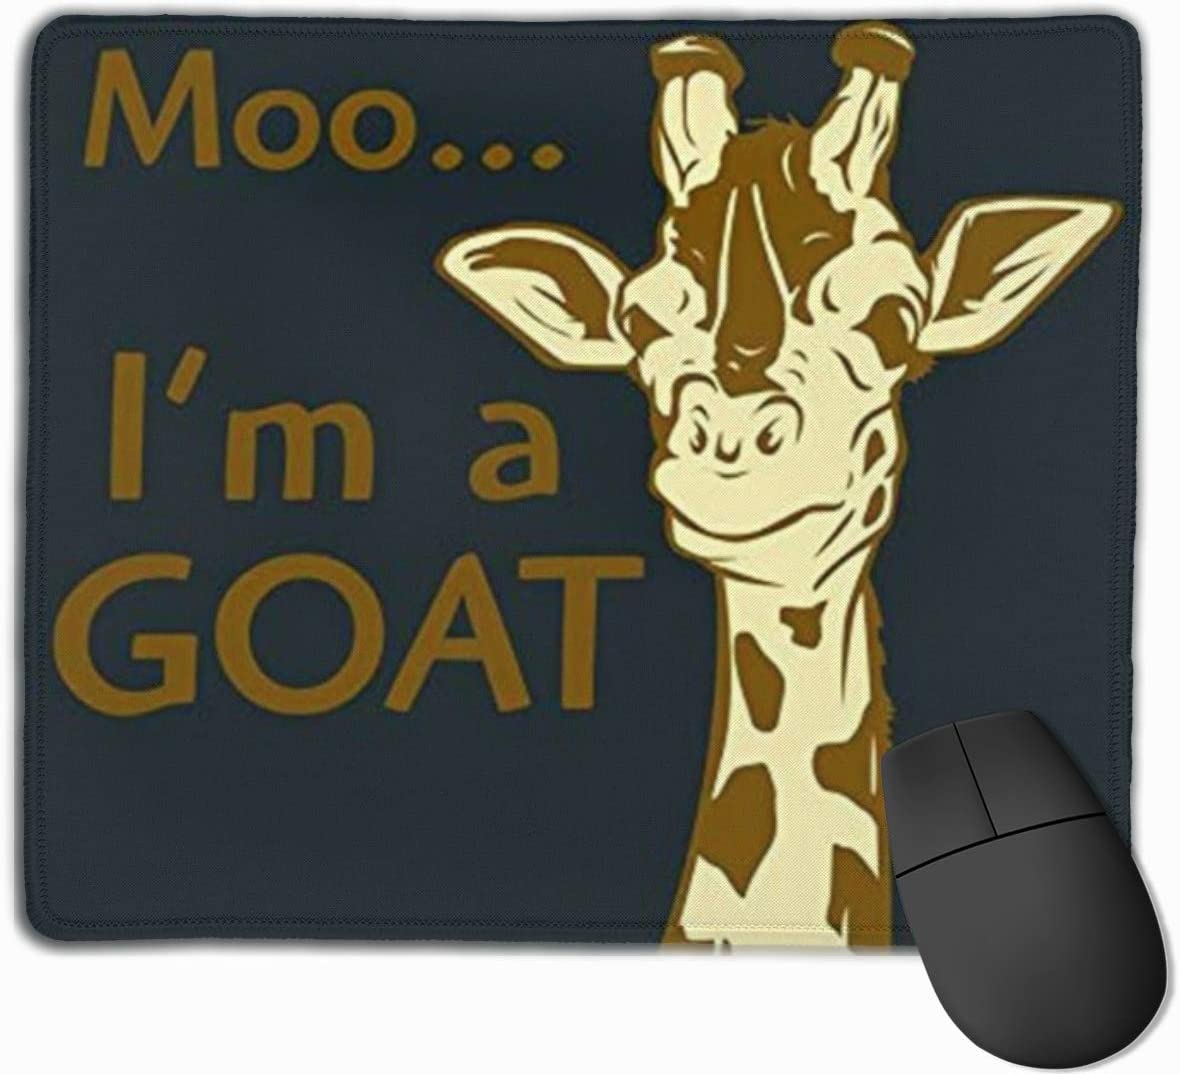 Moo Im A Goat Personalized Mouse Pads with Stitched Edges Non-Slip Rubber Base Extended Gaming Mouse Mat for Computer Laptop PC Office/&Home Mousepad 9.8 X 11.8 Inch